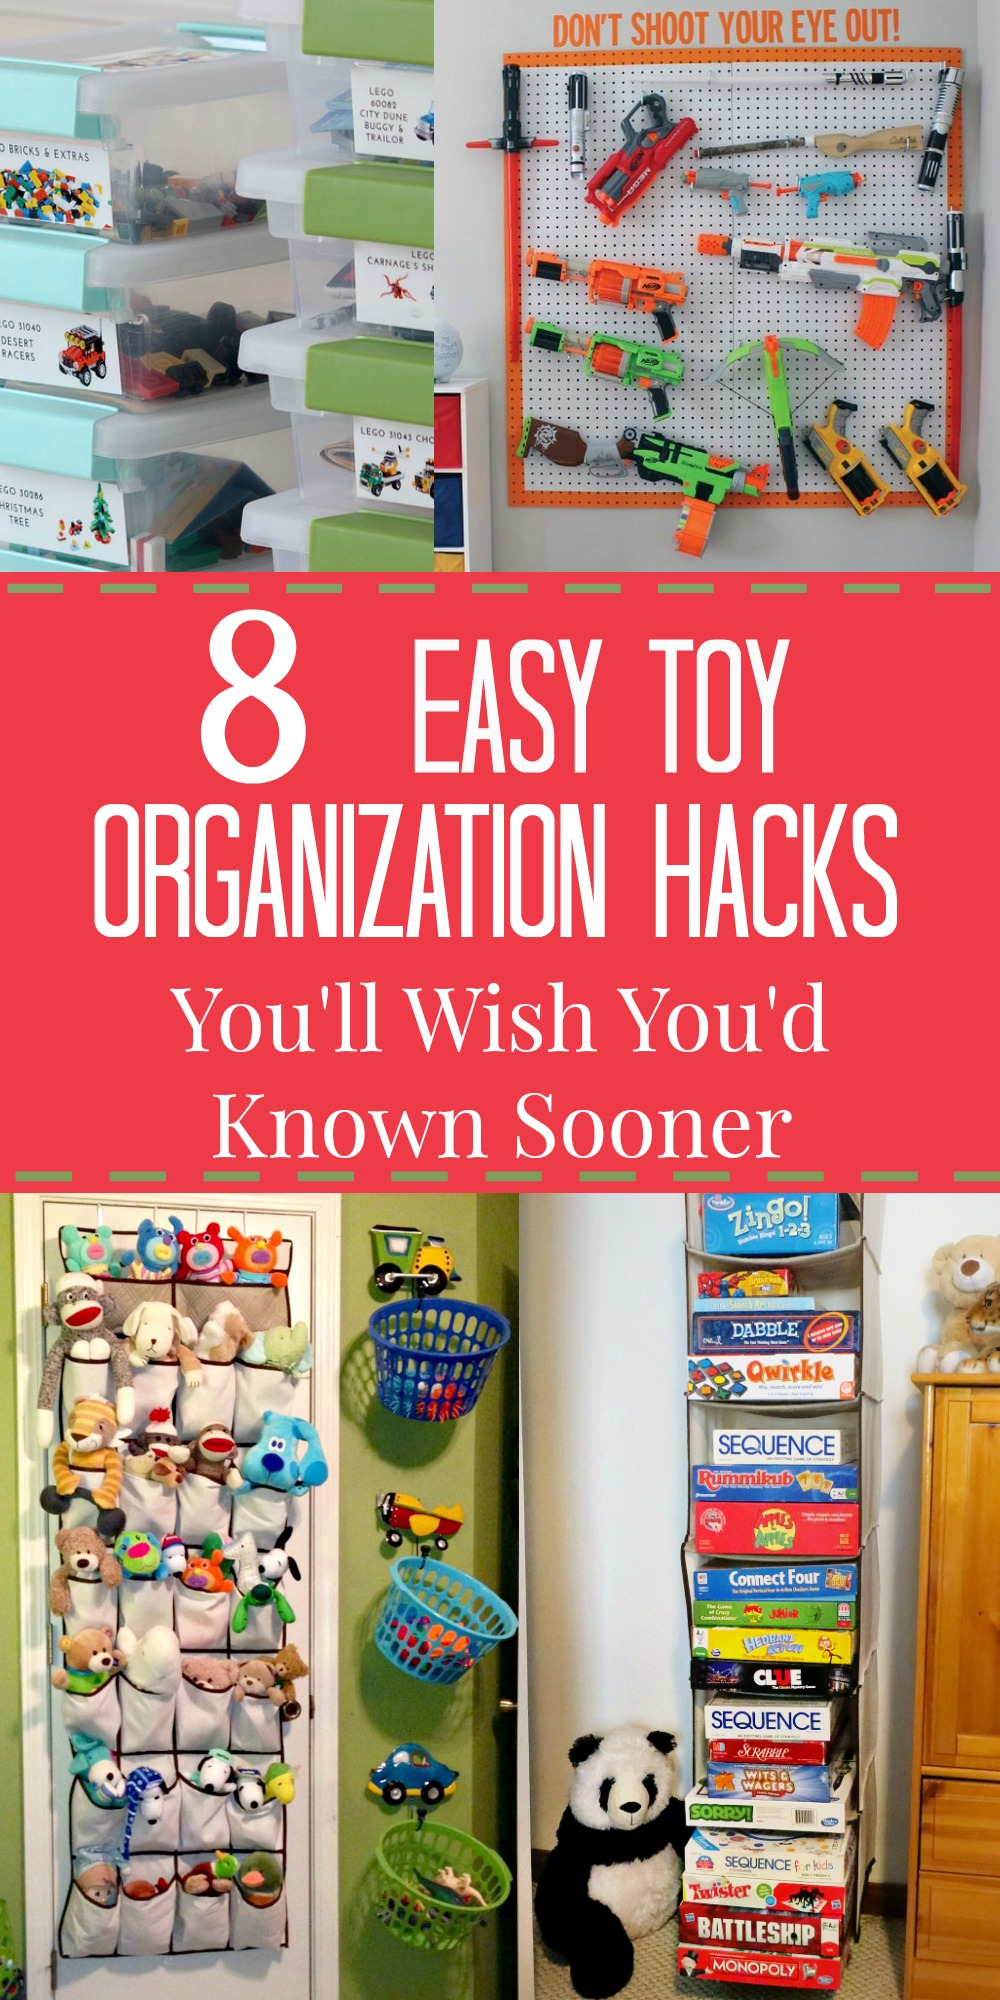 8 Kids Storage And Organization Ideas: 8 Ridiculously Easy Toy Organization Hacks You'll Wish You